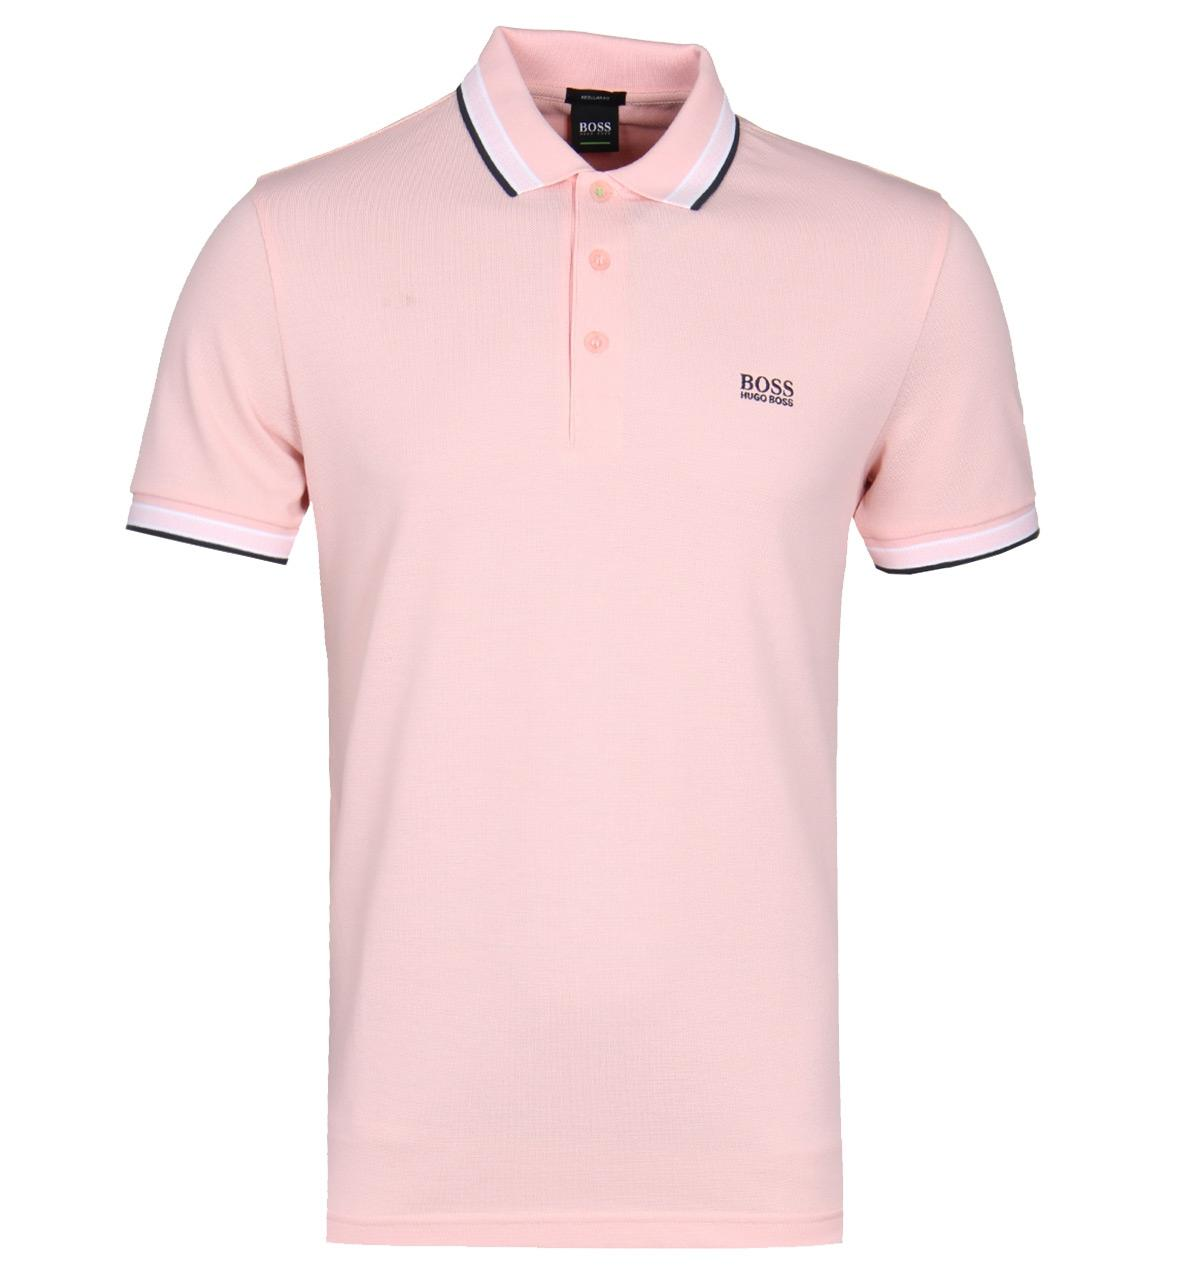 9a9e9aa34734 Boss Athleisure Paddy Pink Polo Shirt in Pink for Men - Lyst